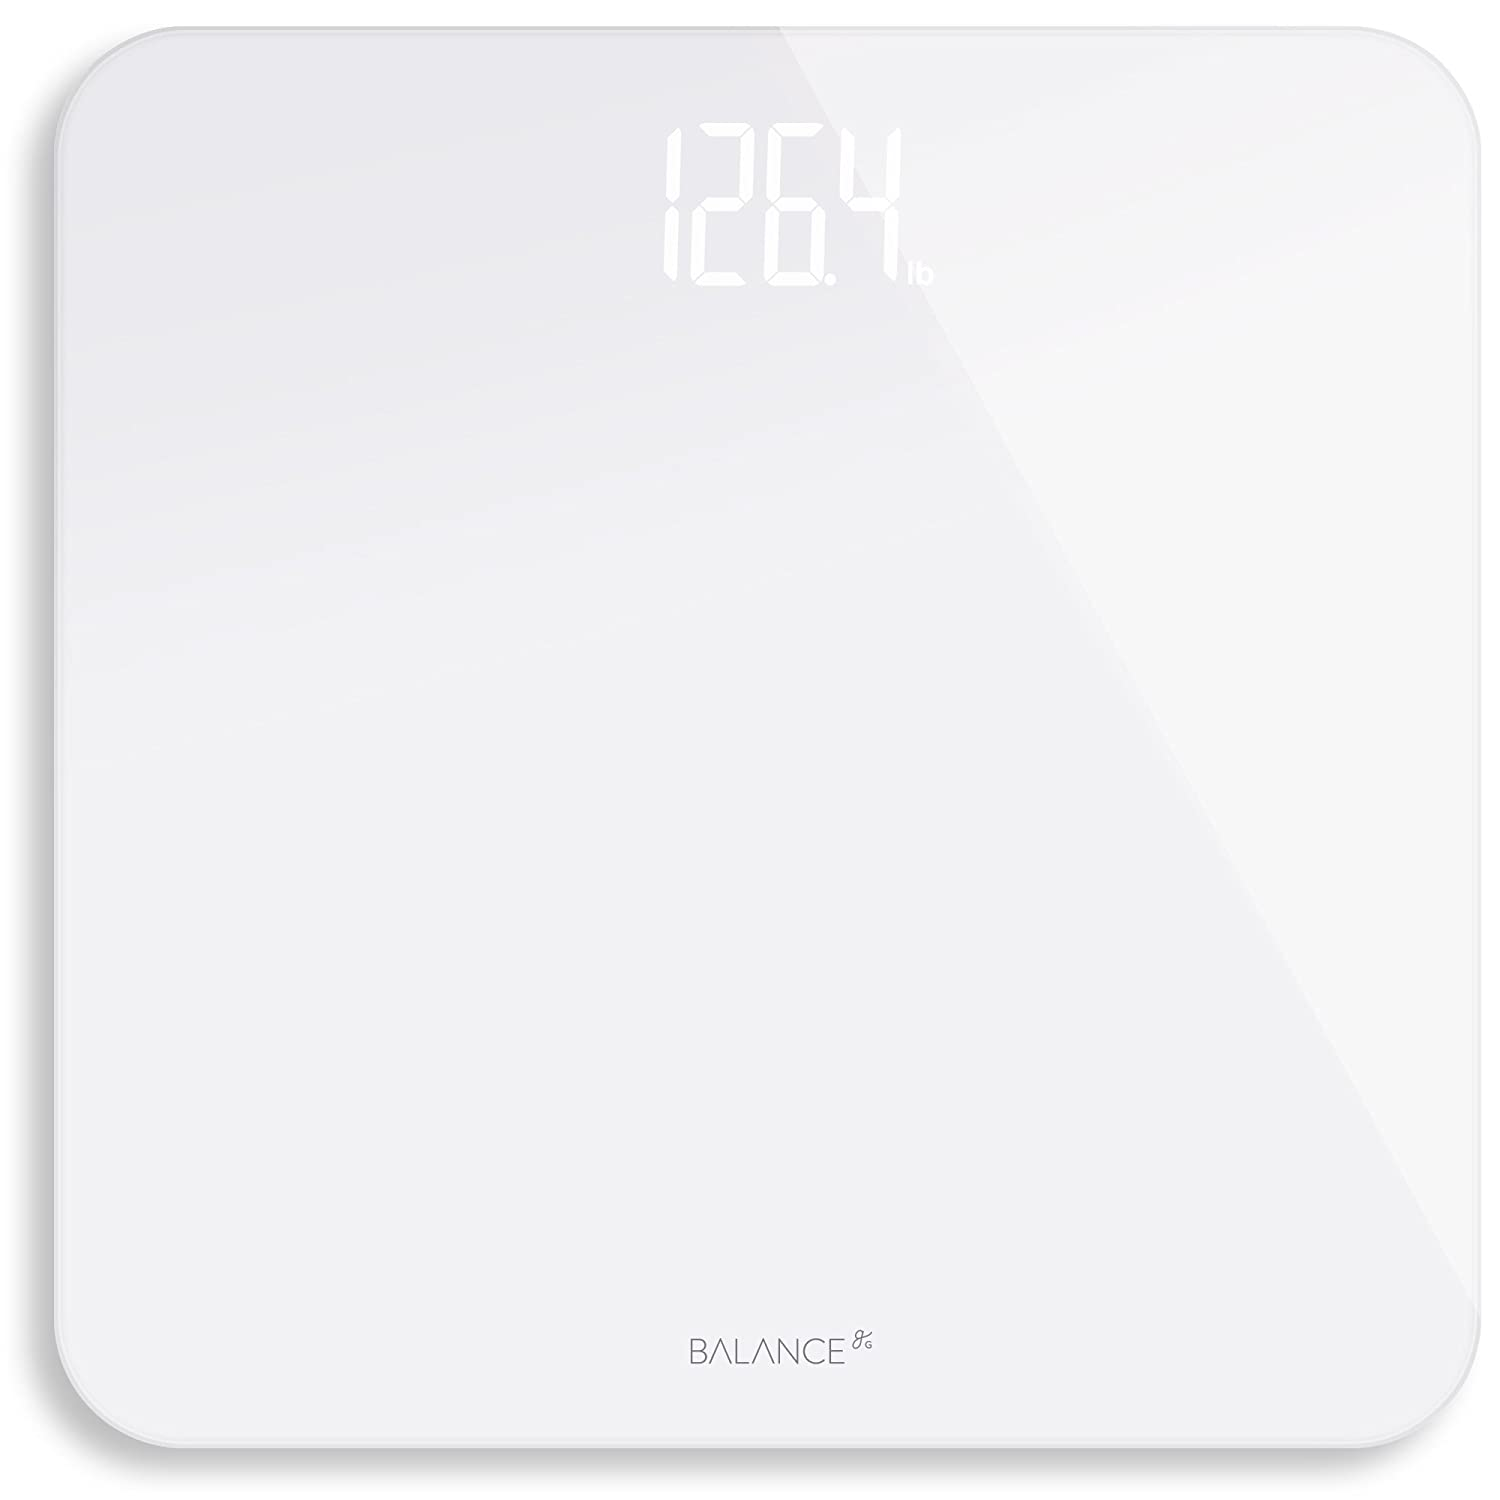 Digital Body Weight Bathroom Scale from GreaterGoods (White) Greater Goods